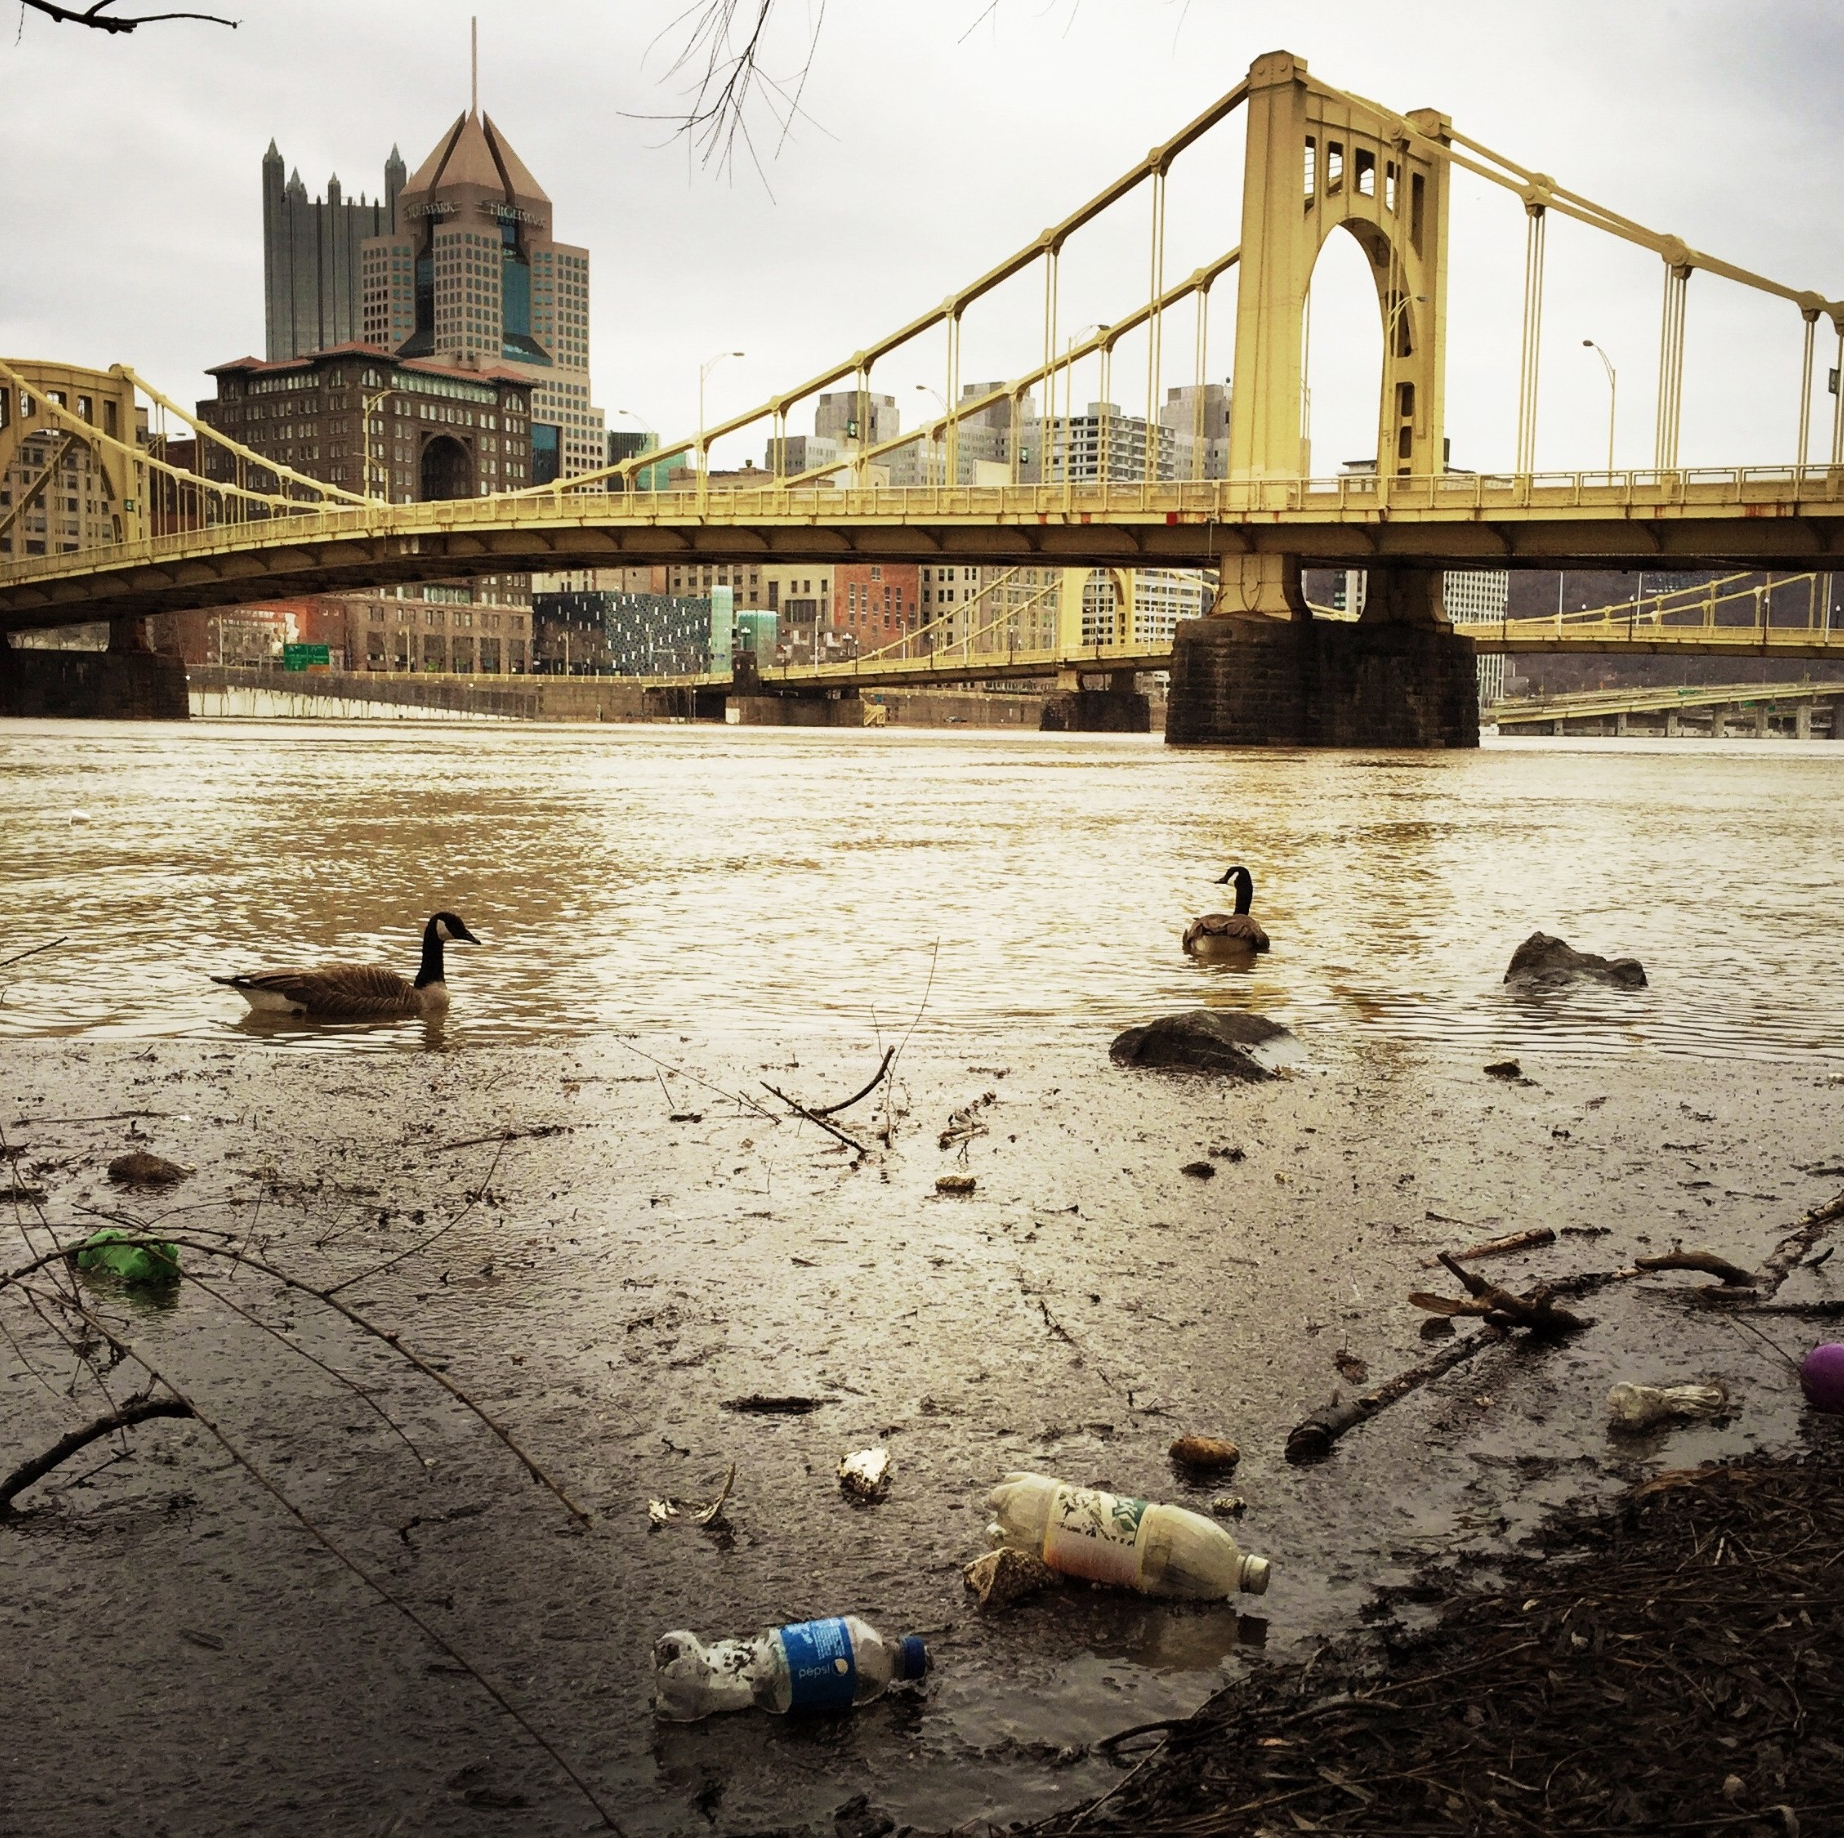 As the snow melts, higher water levels and pollution/trash can be seen on the Allegheny River from the North Shore of the City of Pittsburgh, photo by bgwalker/Getty Images